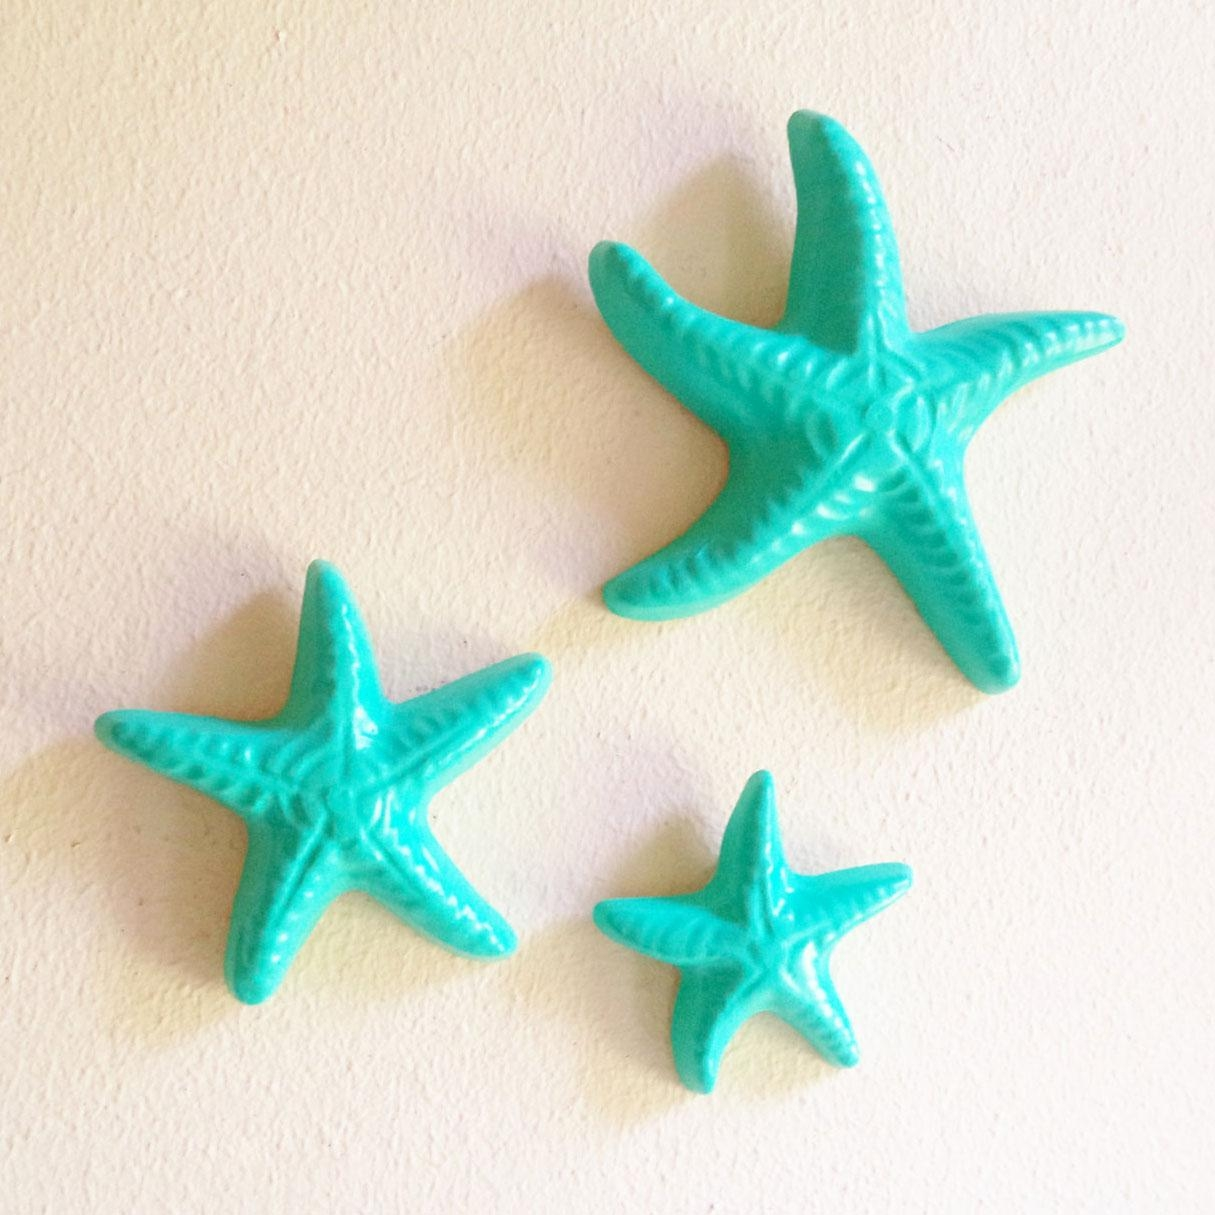 How To Do Starfish Wall Decor | Design Ideas And Decor for Large Starfish Wall Decors